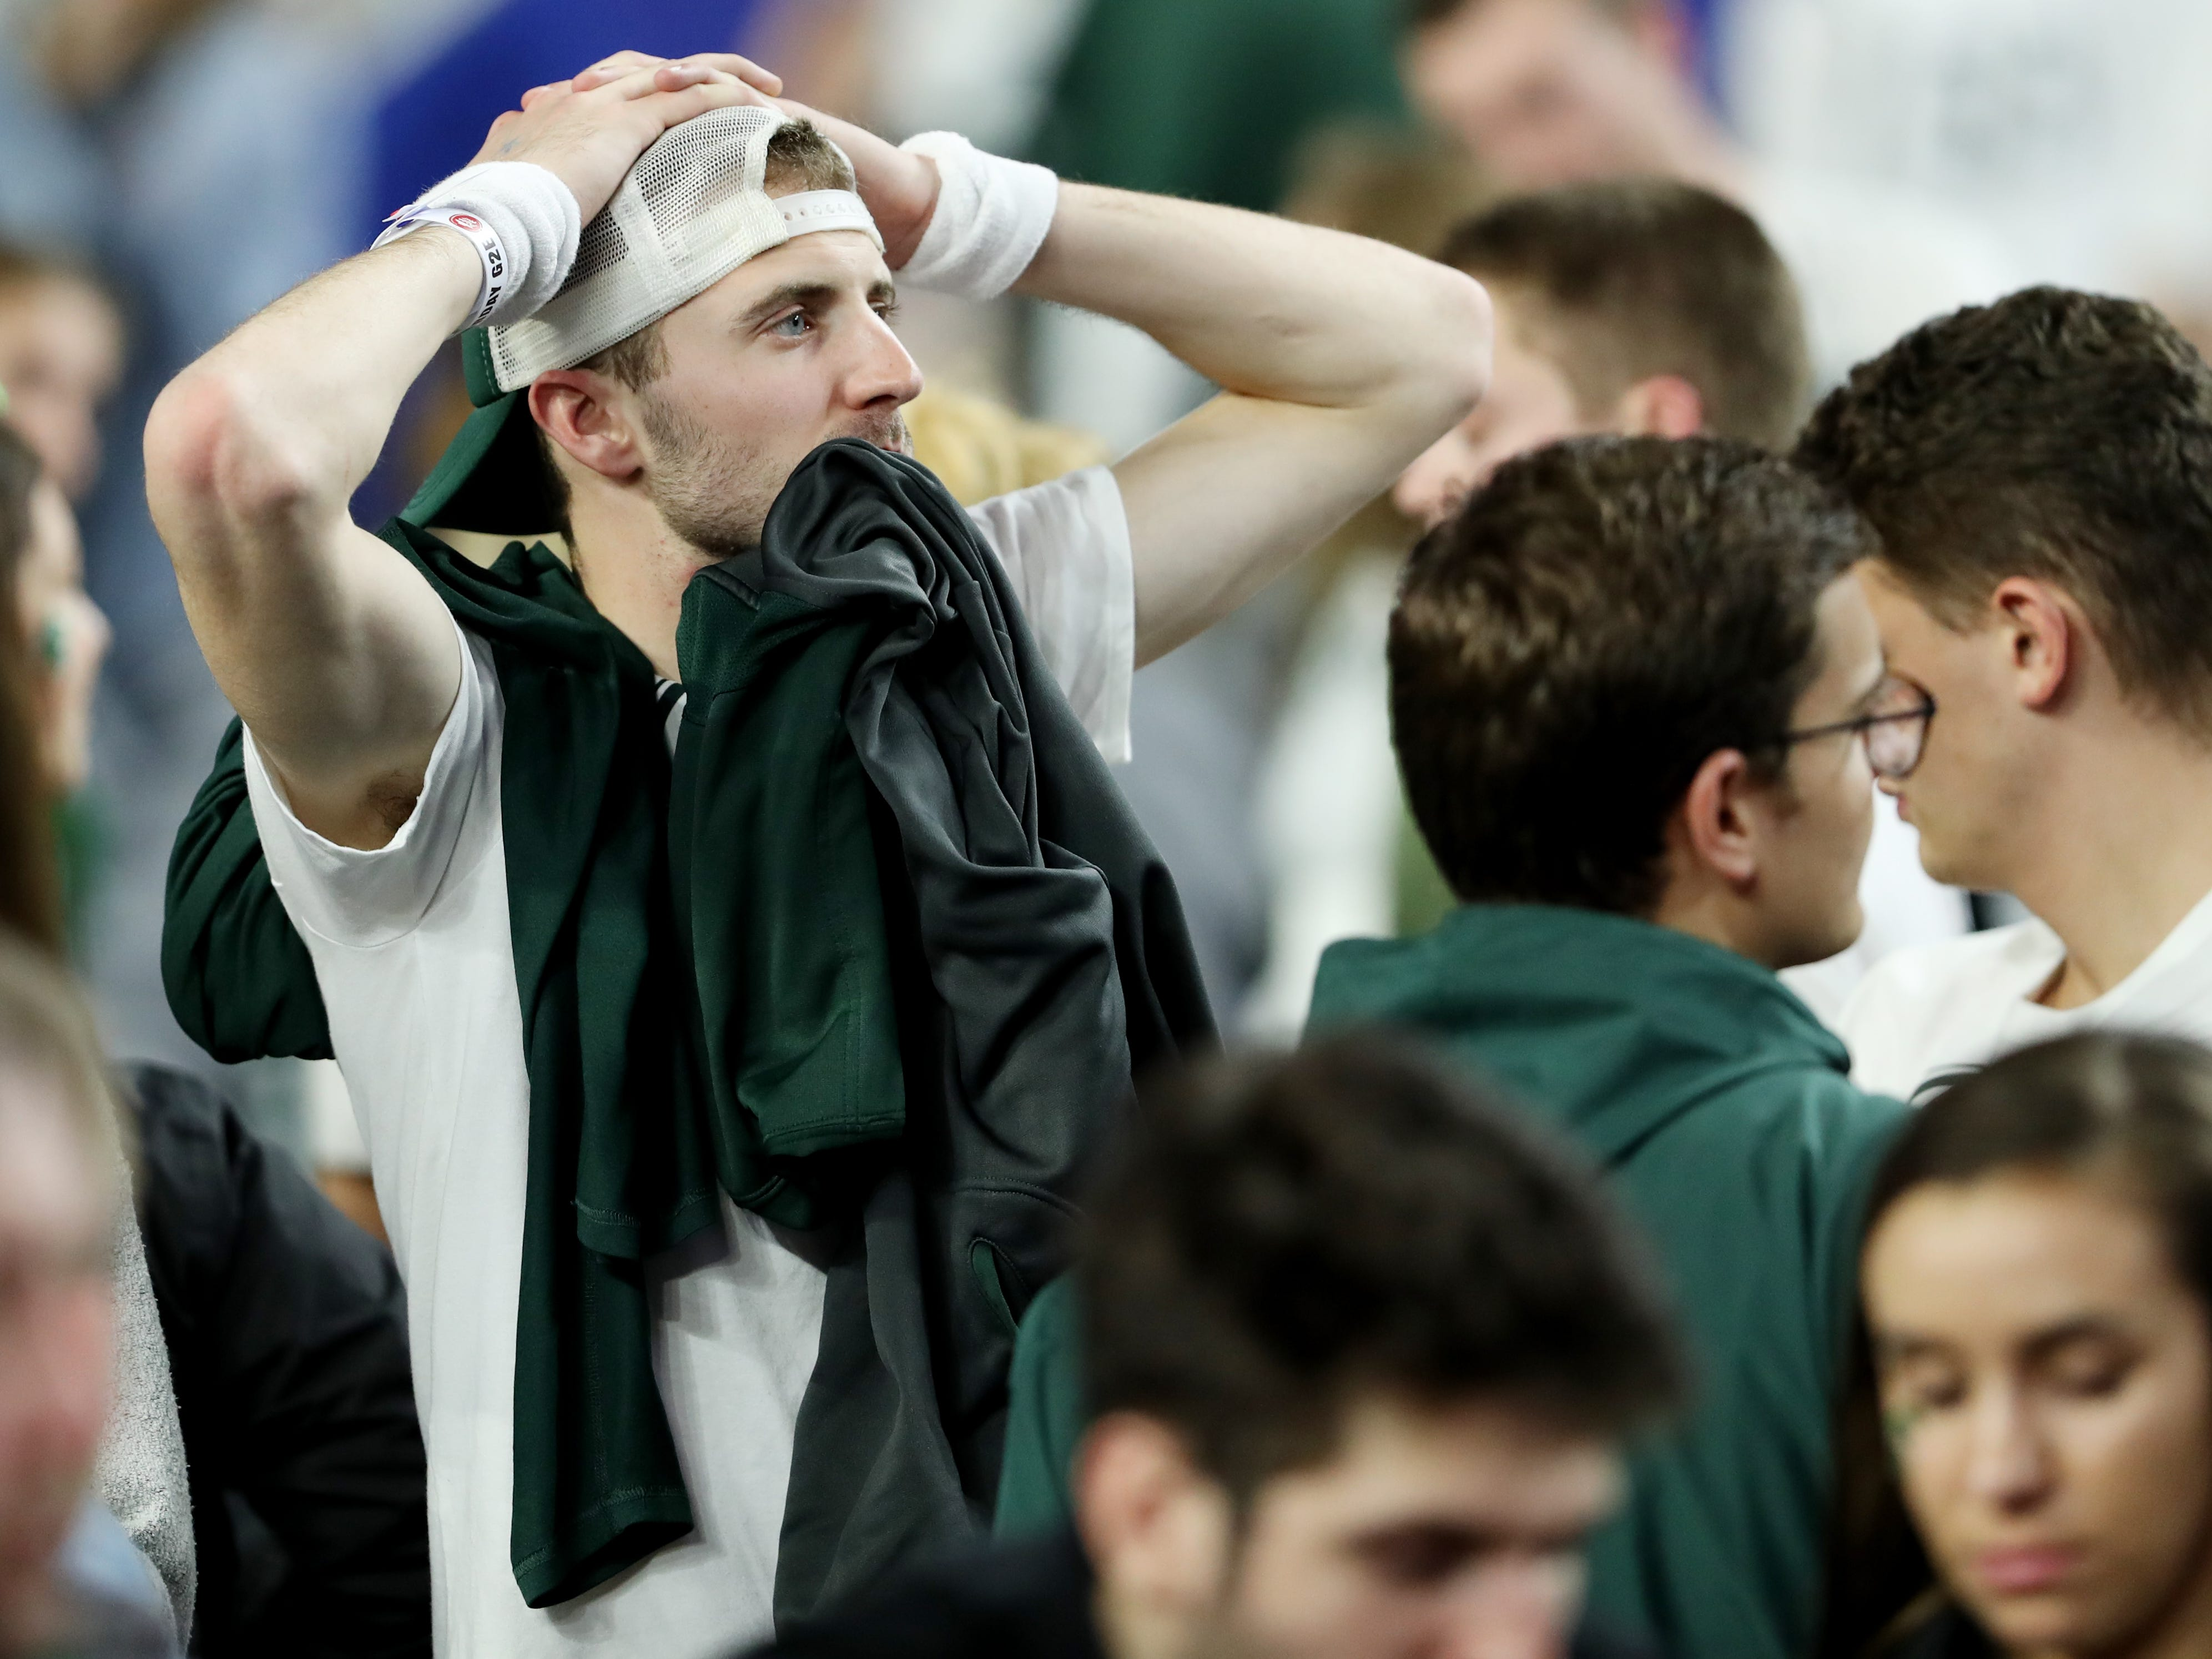 A Michigan State reacts after the Spartan's lost to Texas Tech in the Final Four at U.S. Bank Stadium in Minneapolis, Minnesota on Saturday, April 6, 2019.